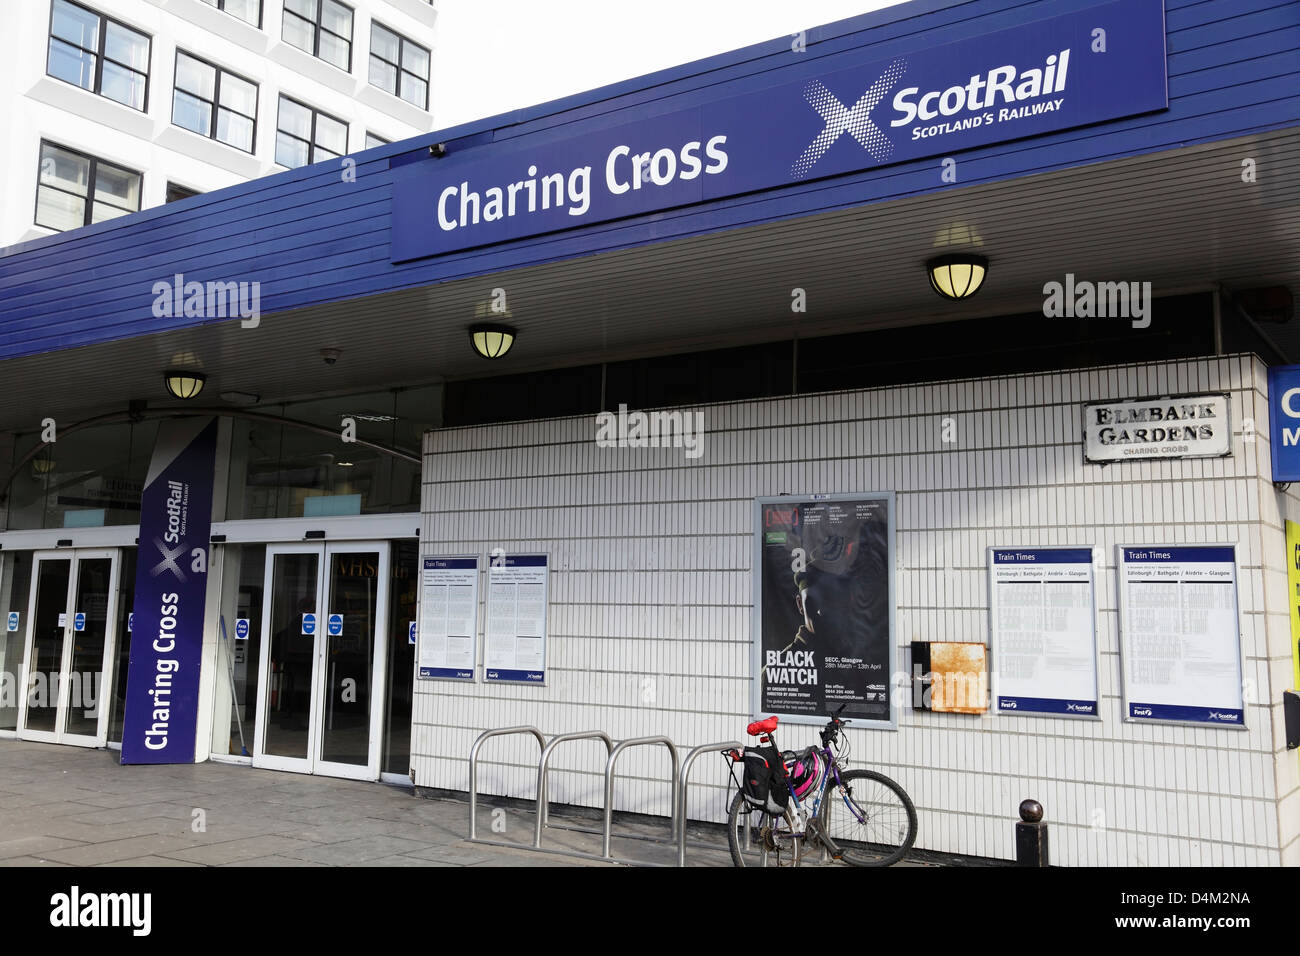 Entrance to Charing Cross Scotrail Train Station on Elmbank Gardens in Glasgow, Scotland, UK - Stock Image